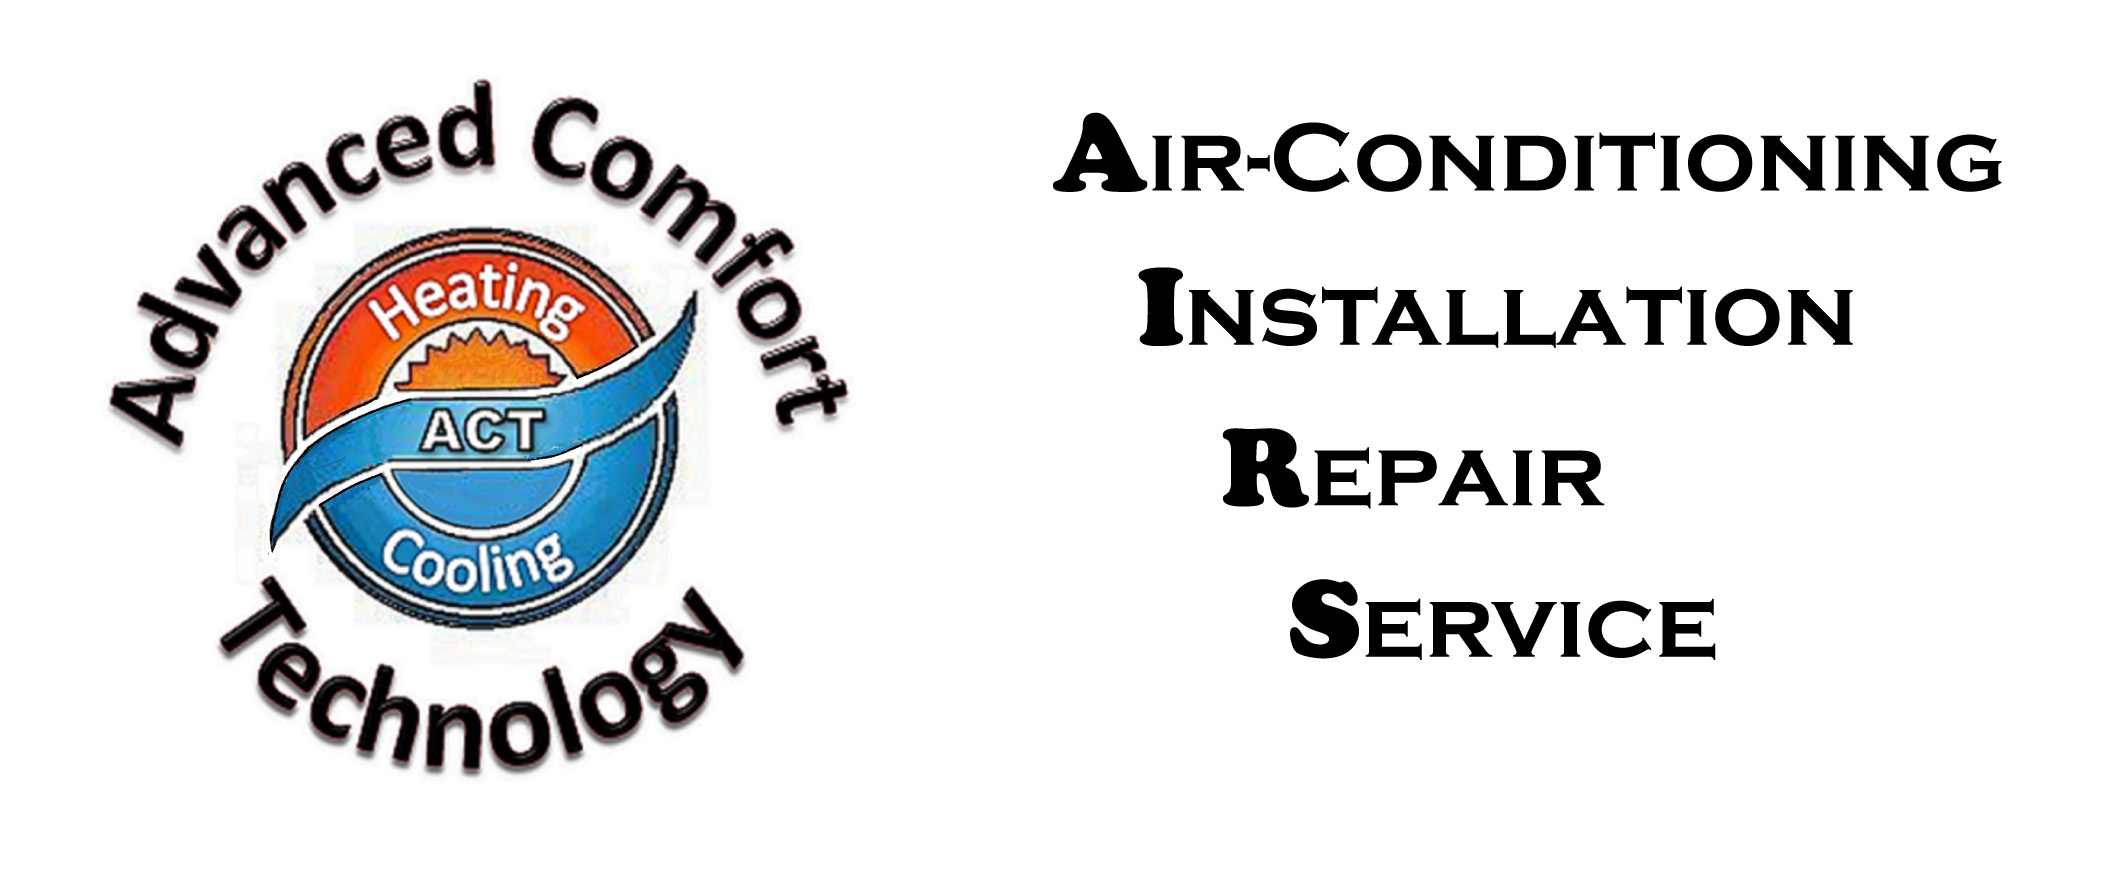 Advanced Comfort Technology Air-Conditioning Installation, Repair and Service in bakersfield